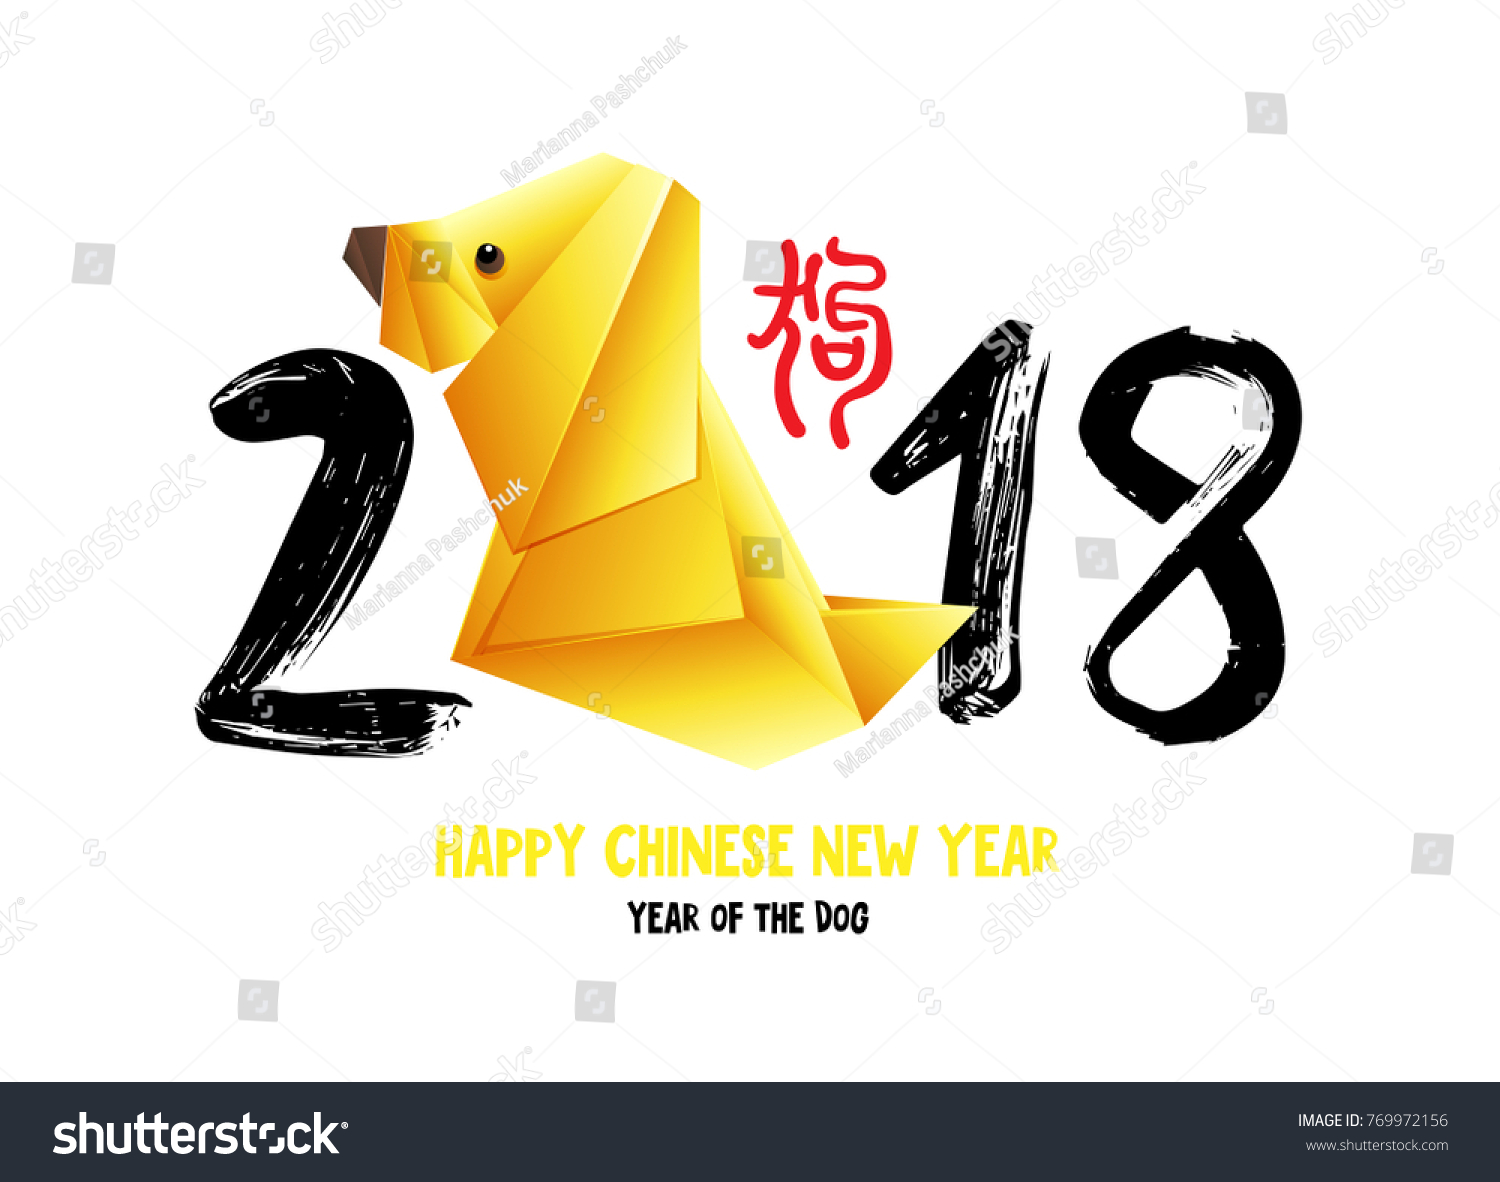 2018 chinese new year greeting card stock vector royalty free 2018 chinese new year greeting card with yellow origami dog chinese translation red seal m4hsunfo